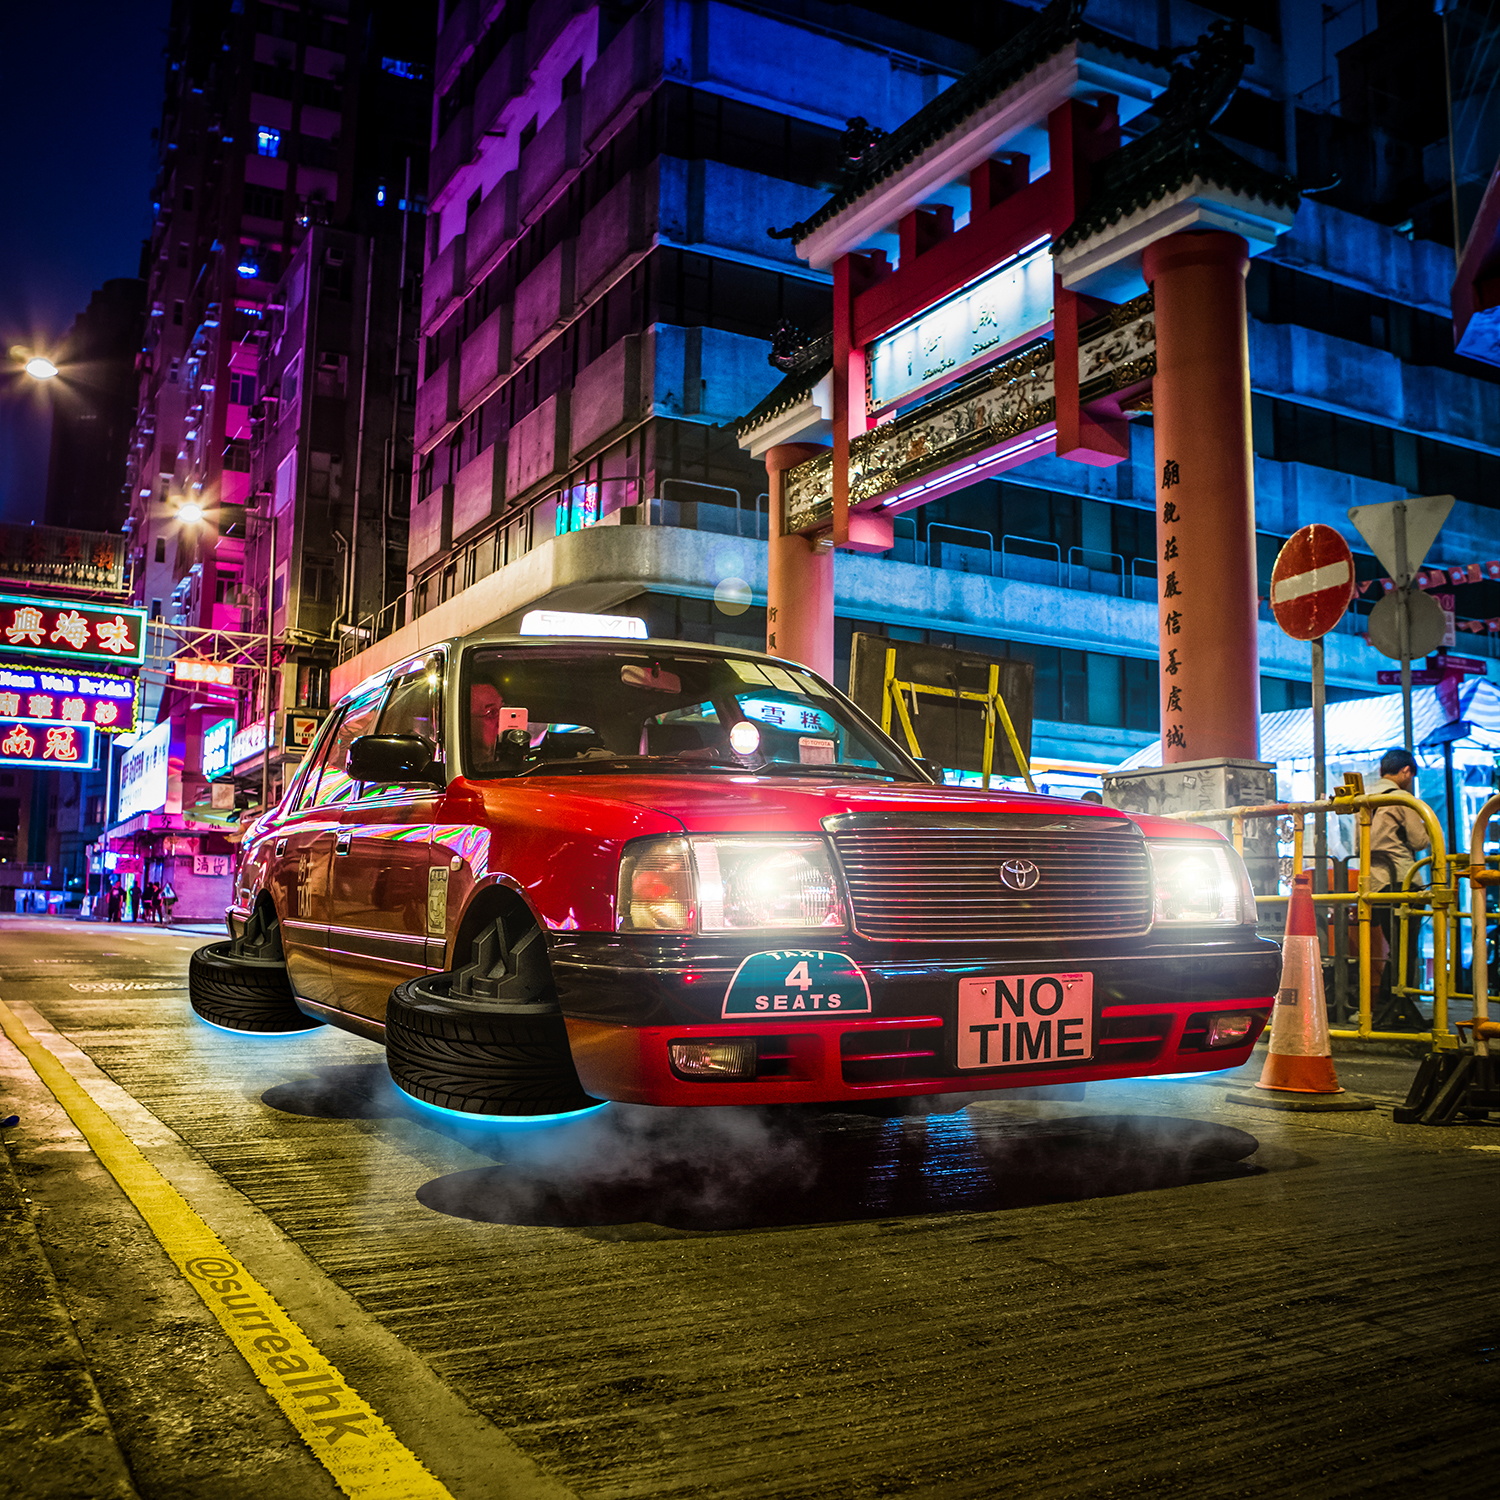 Tommy Fung/@surrealhk - Flying Taxi Temple Street s1500